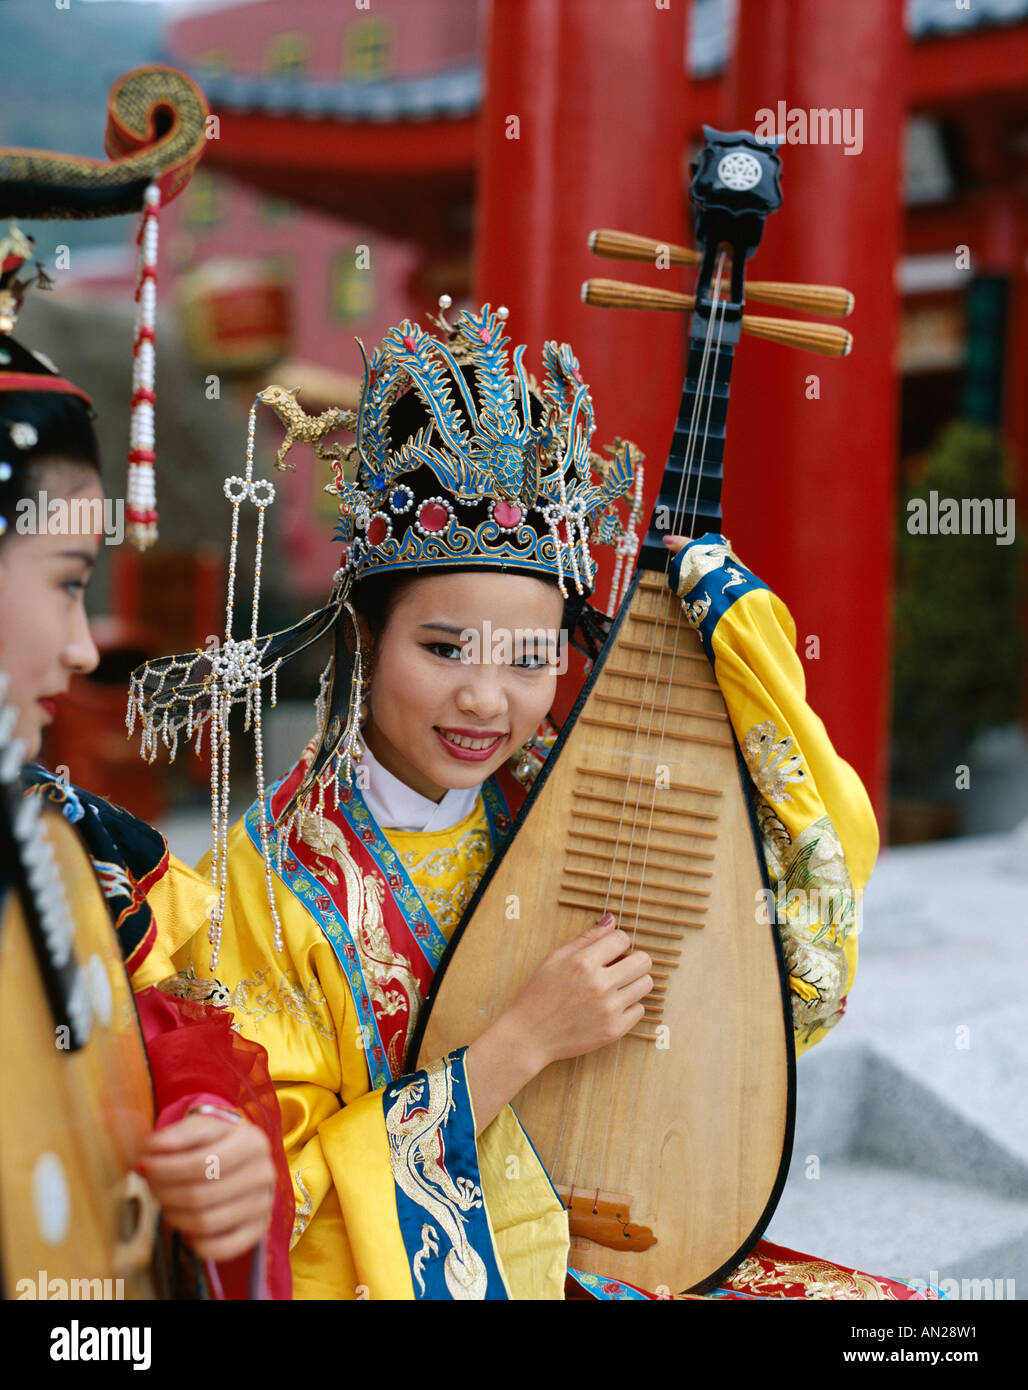 Women Dressed in Traditional Costume Playing Three Stringed Lute, Beijing  , China - Stock Image